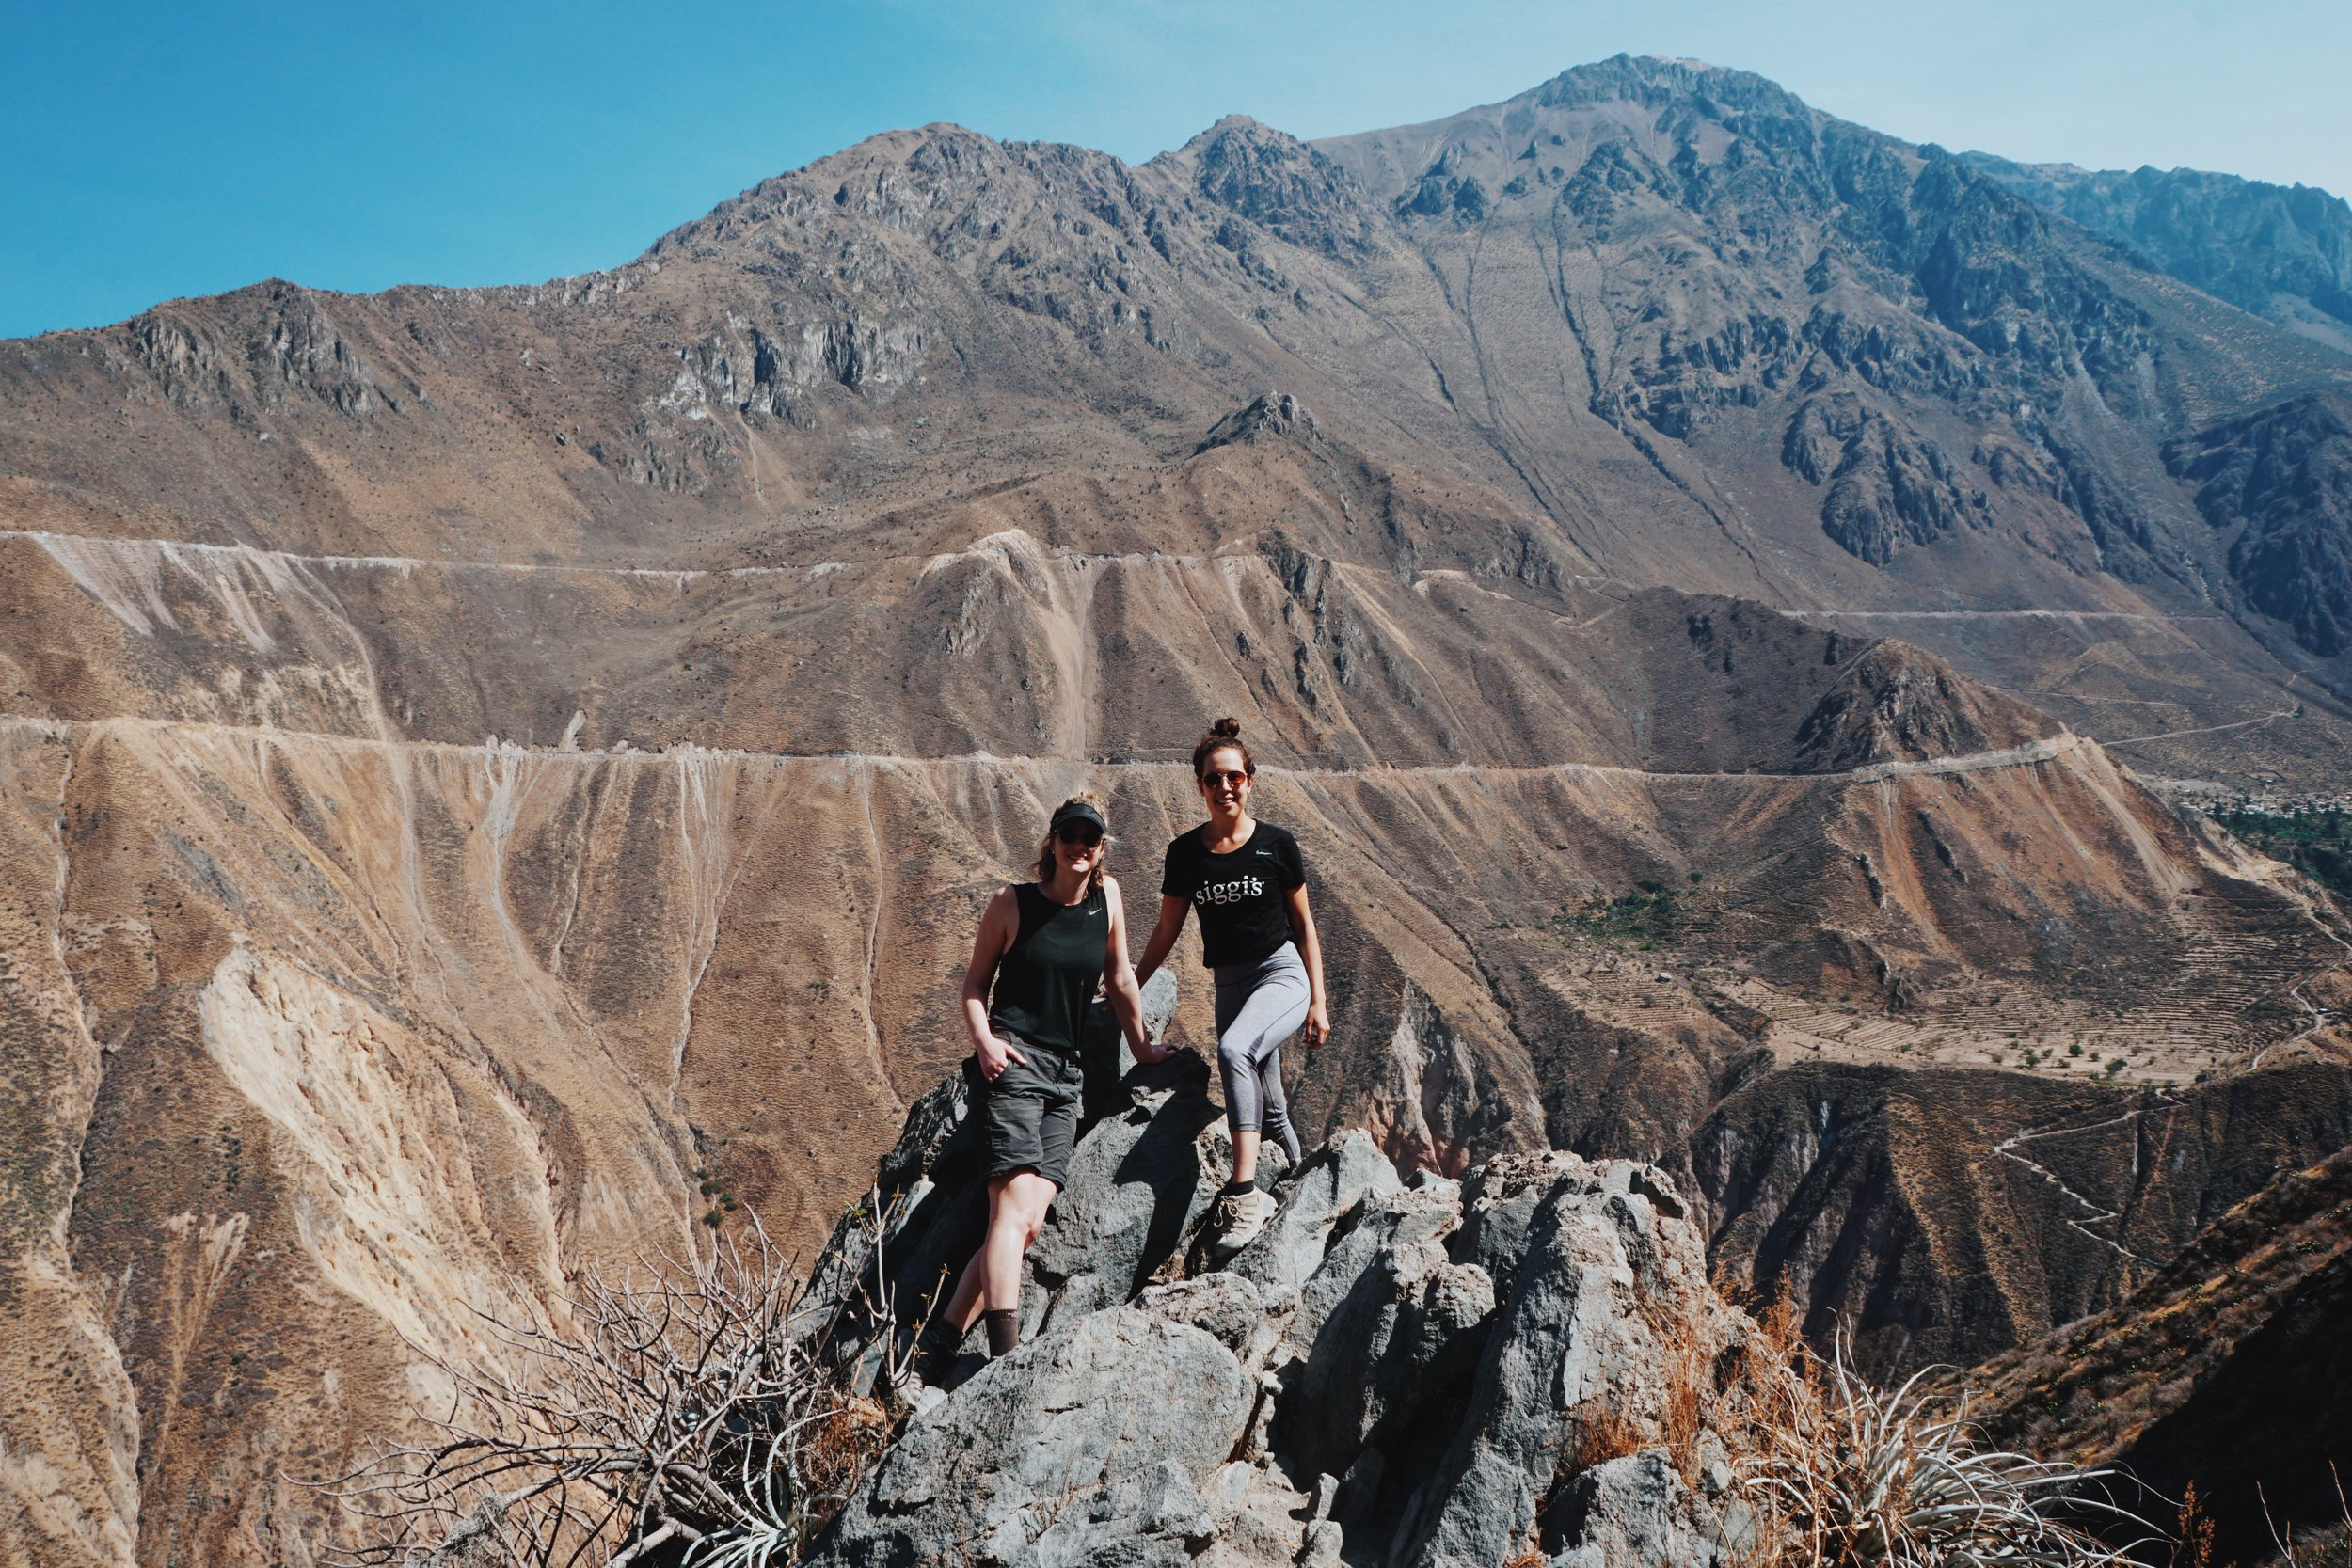 Overnight hiking in Colca Canyon, Peru.